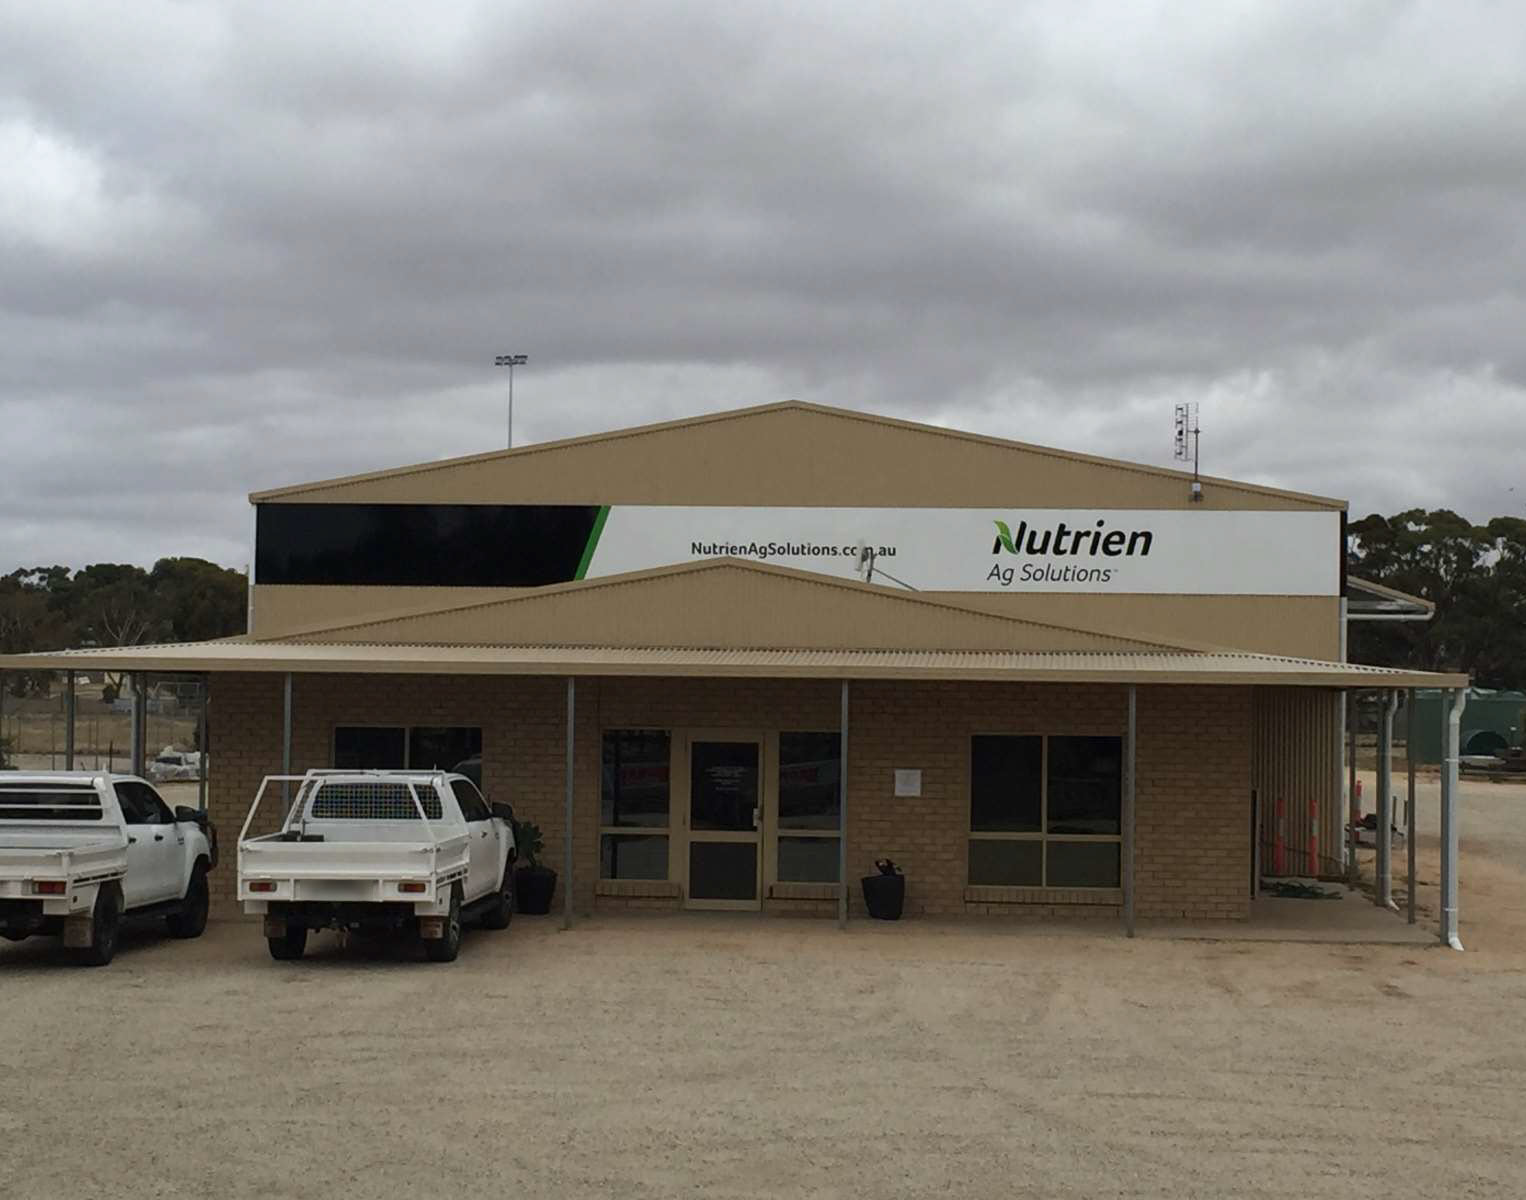 Nutrien Ag Solutions - Boort, VIC 3537 - (03) 5455 2002 | ShowMeLocal.com